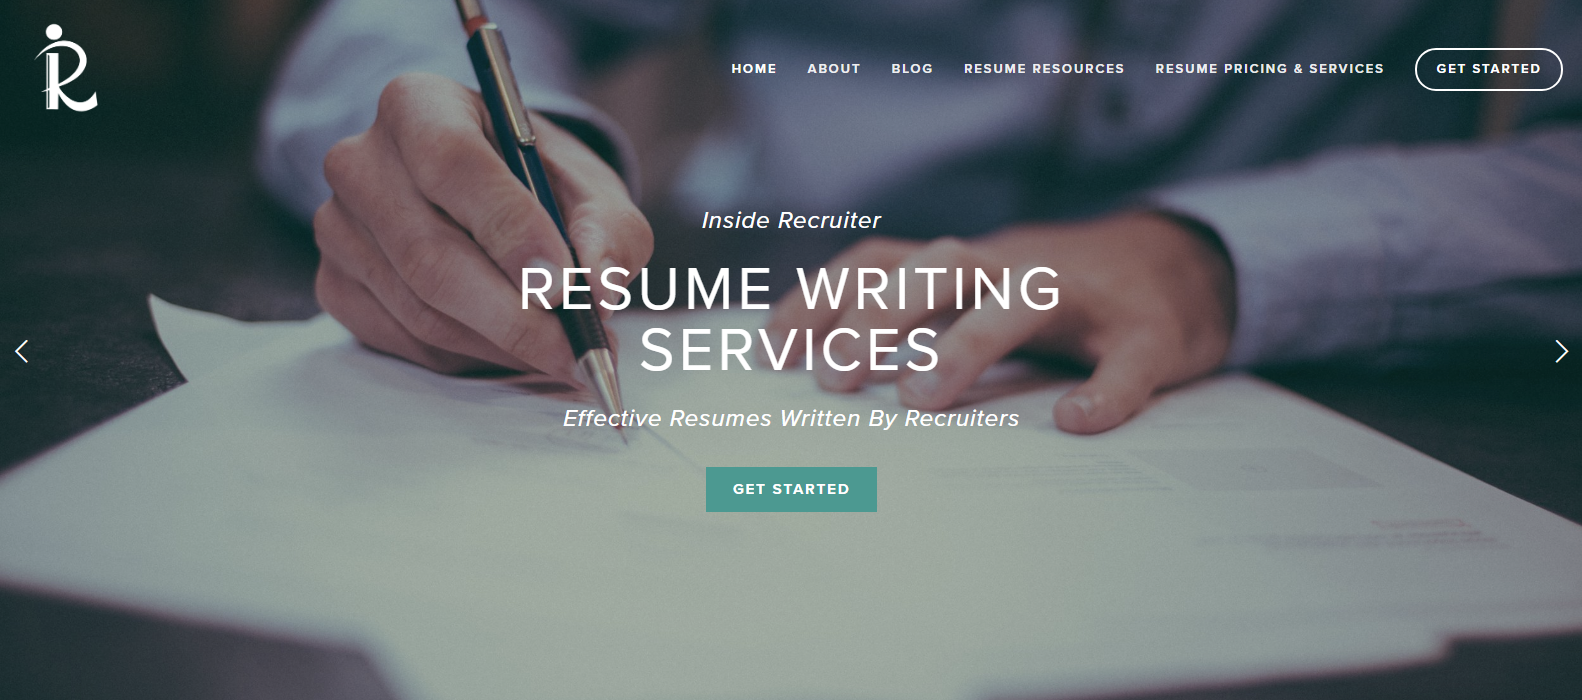 Best Sales Resume Services - Screenshot of Inside Recruiter Homepage